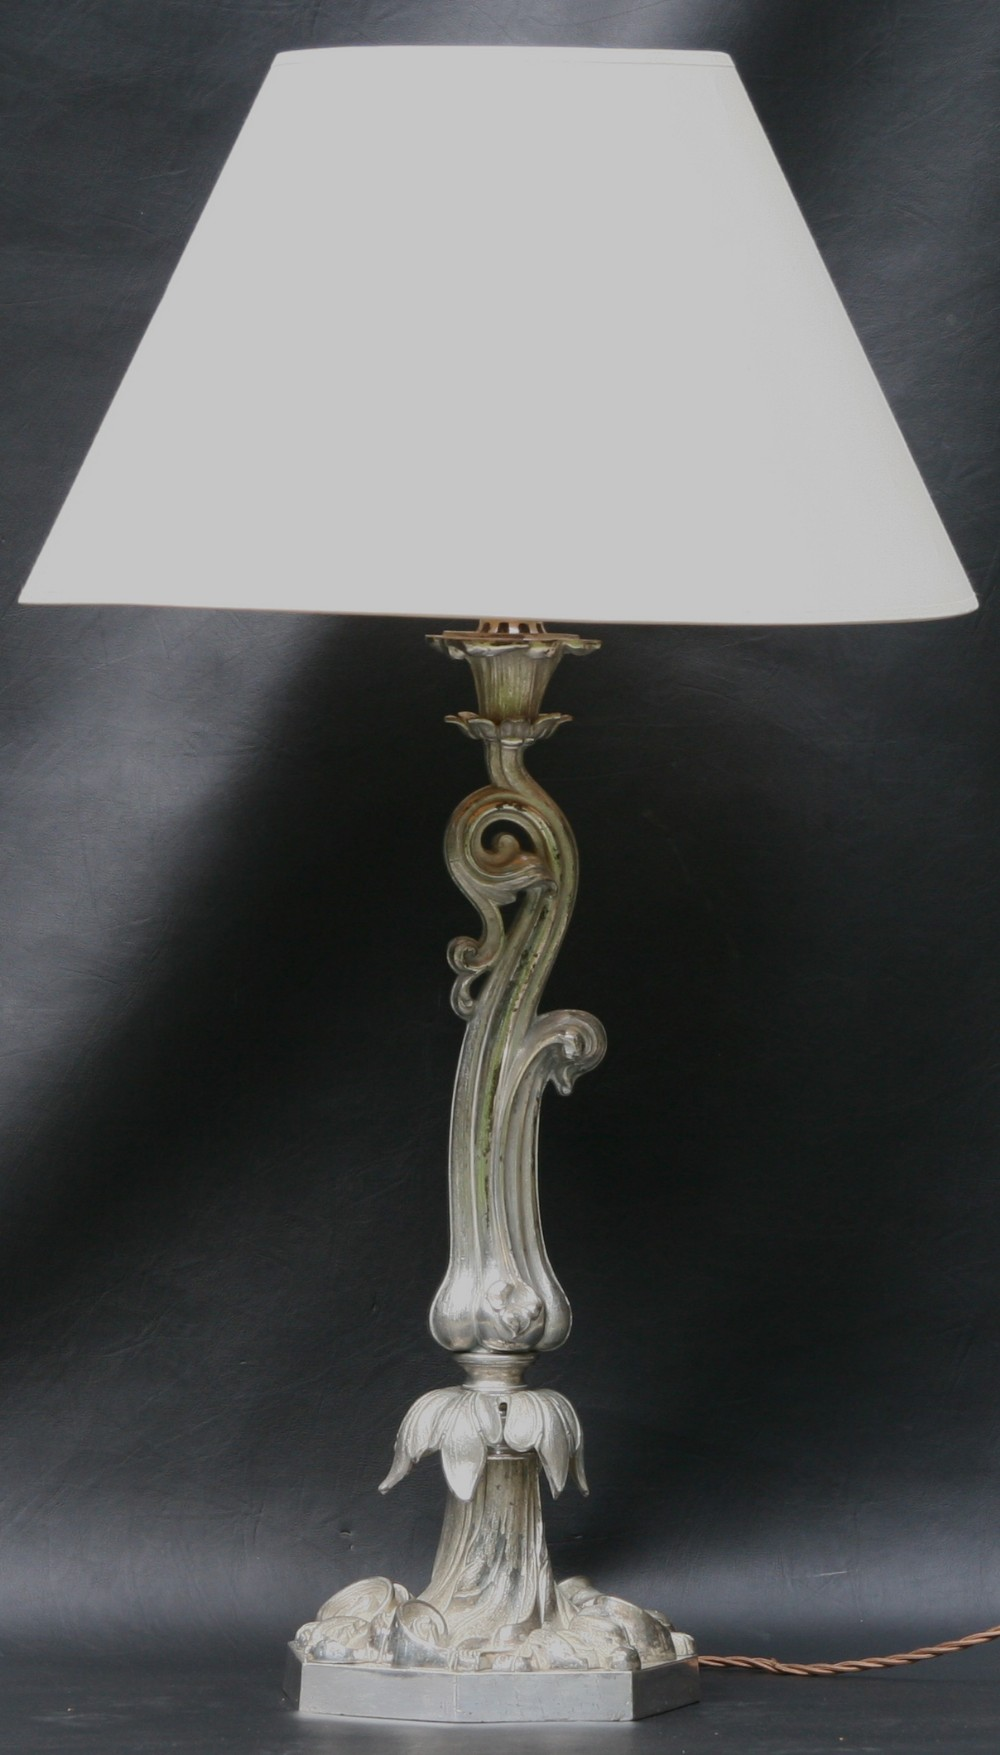 an early victorian silver plated oil lamp base converted to electricity